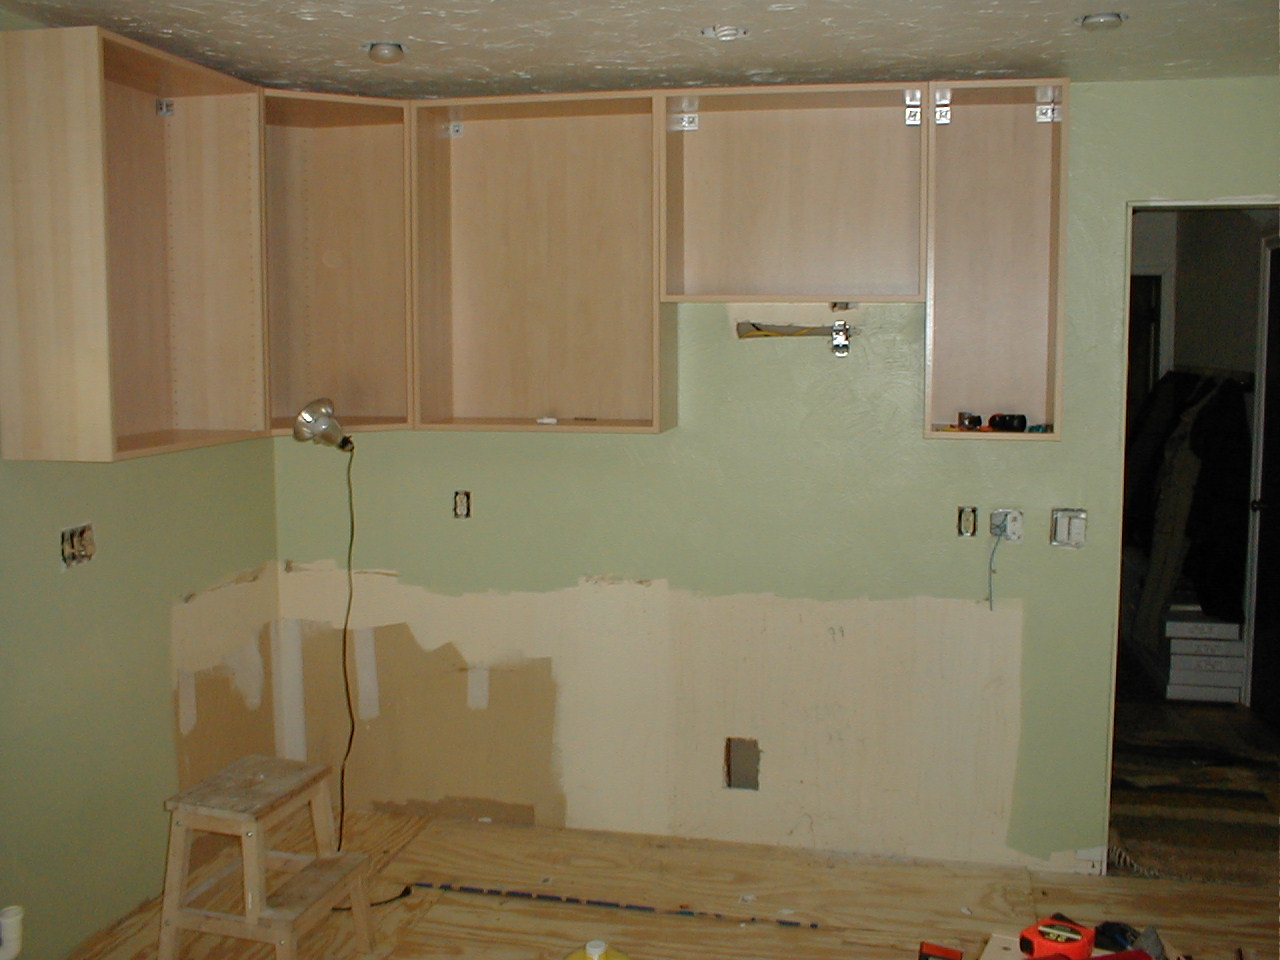 Kitchen Cabinet Hanging Hanging Cabinets